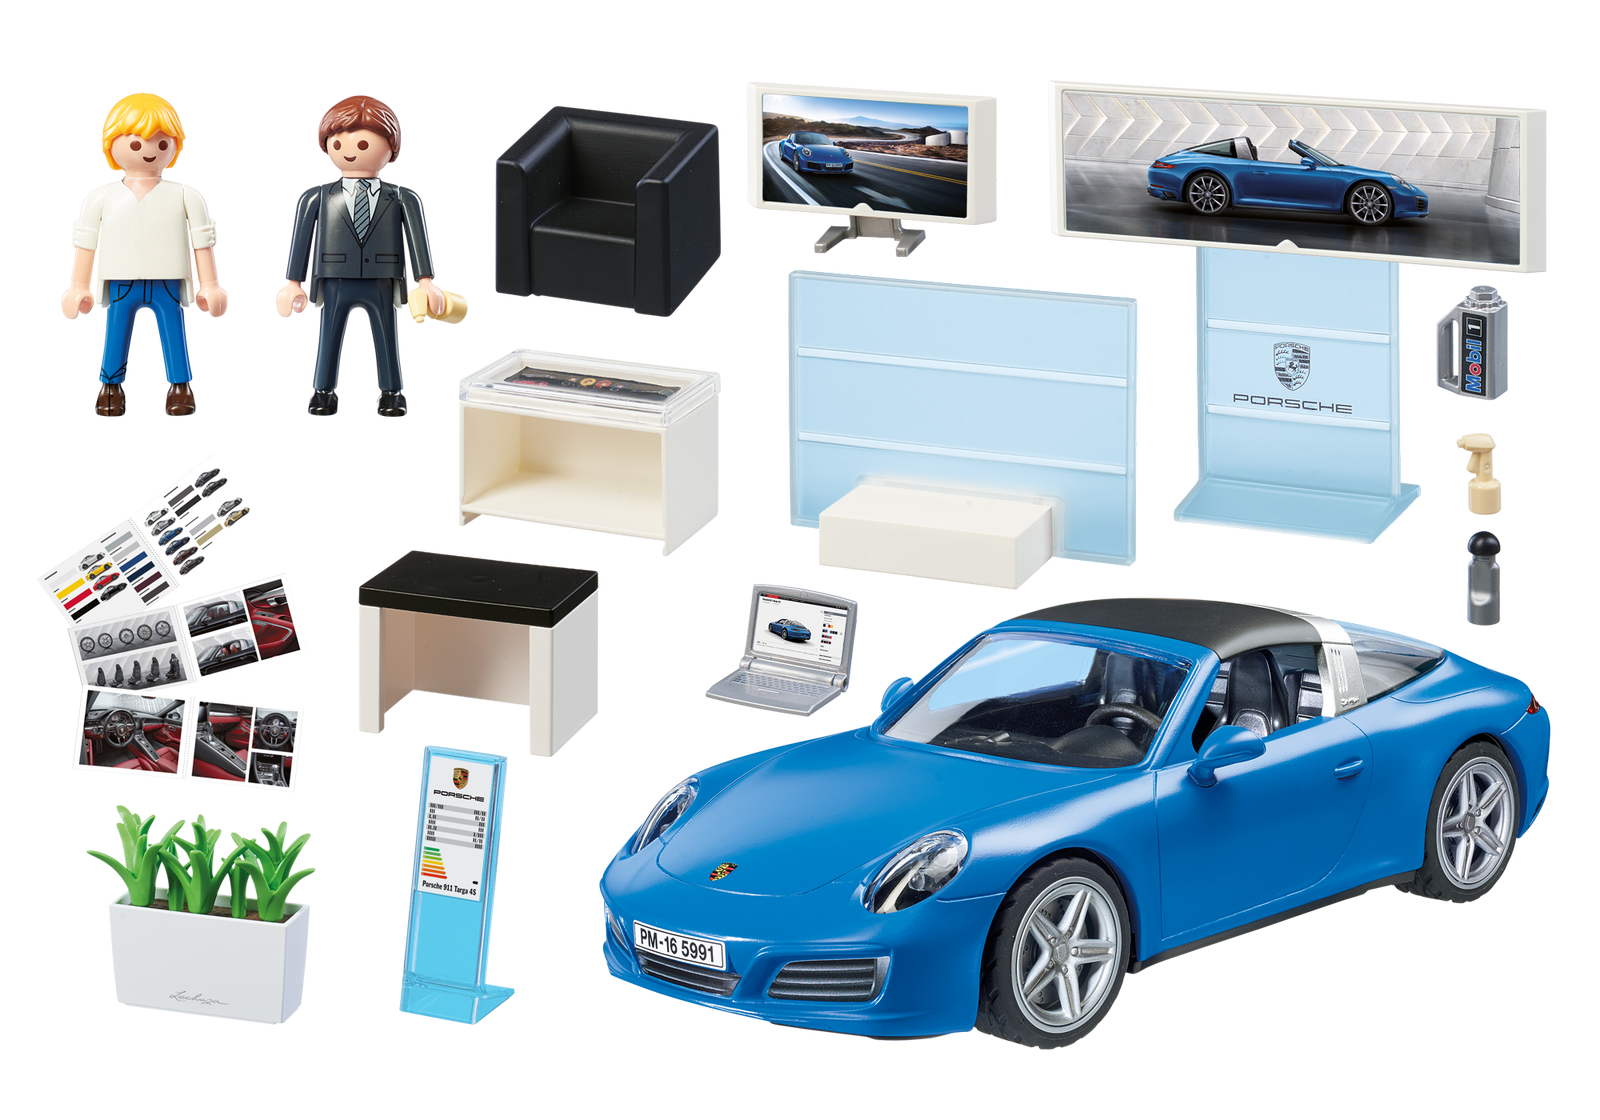 playmobil porsche 911 targa 4s por 29 99 antes 42 99 chollos descuentos y grandes ofertas. Black Bedroom Furniture Sets. Home Design Ideas